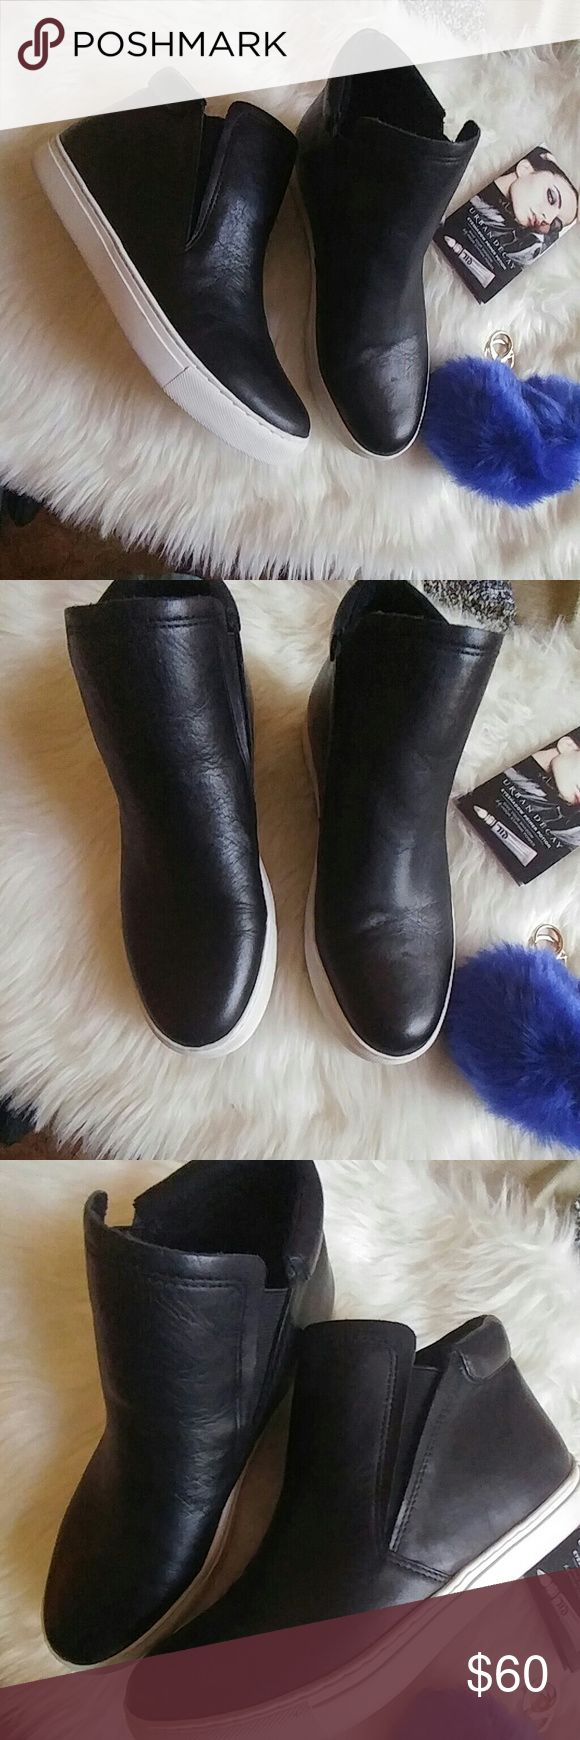 Black Friday Kenneth Cole High top slip-ons Very good condition. Worn twice. The leather is in very good condition. No scuffs, rubs, or scratches. Great for any casual look. Essential piece for any wardrobe. Don't miss out. Kenneth Cole Shoes Athletic Shoes